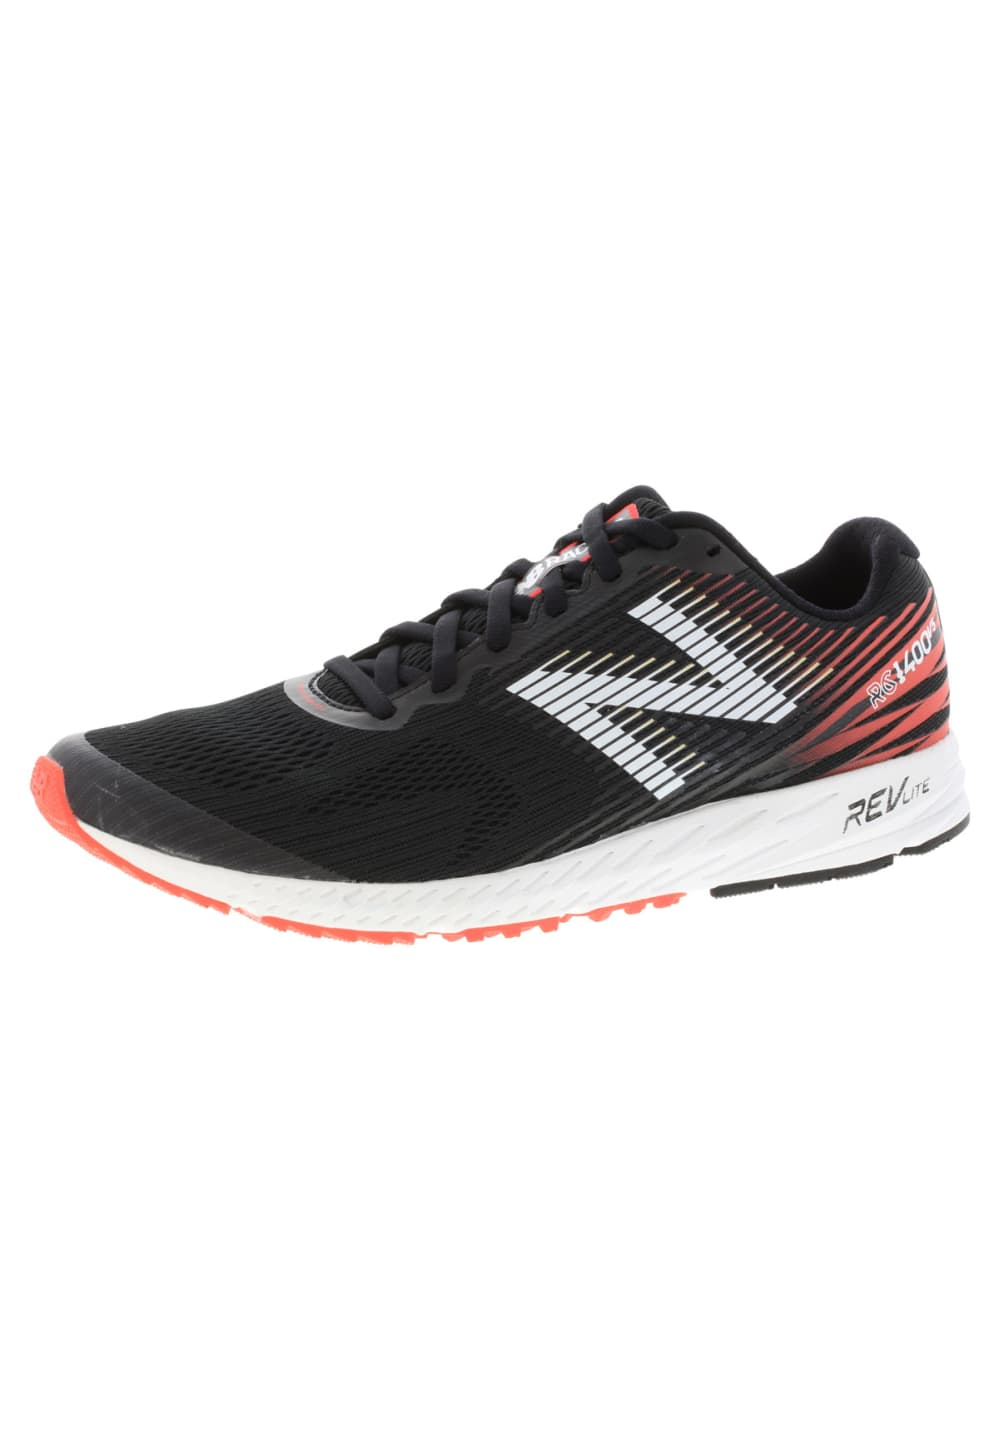 new products ed9f8 c5a27 New Balance 1400V5 - Running shoes for Men - Black